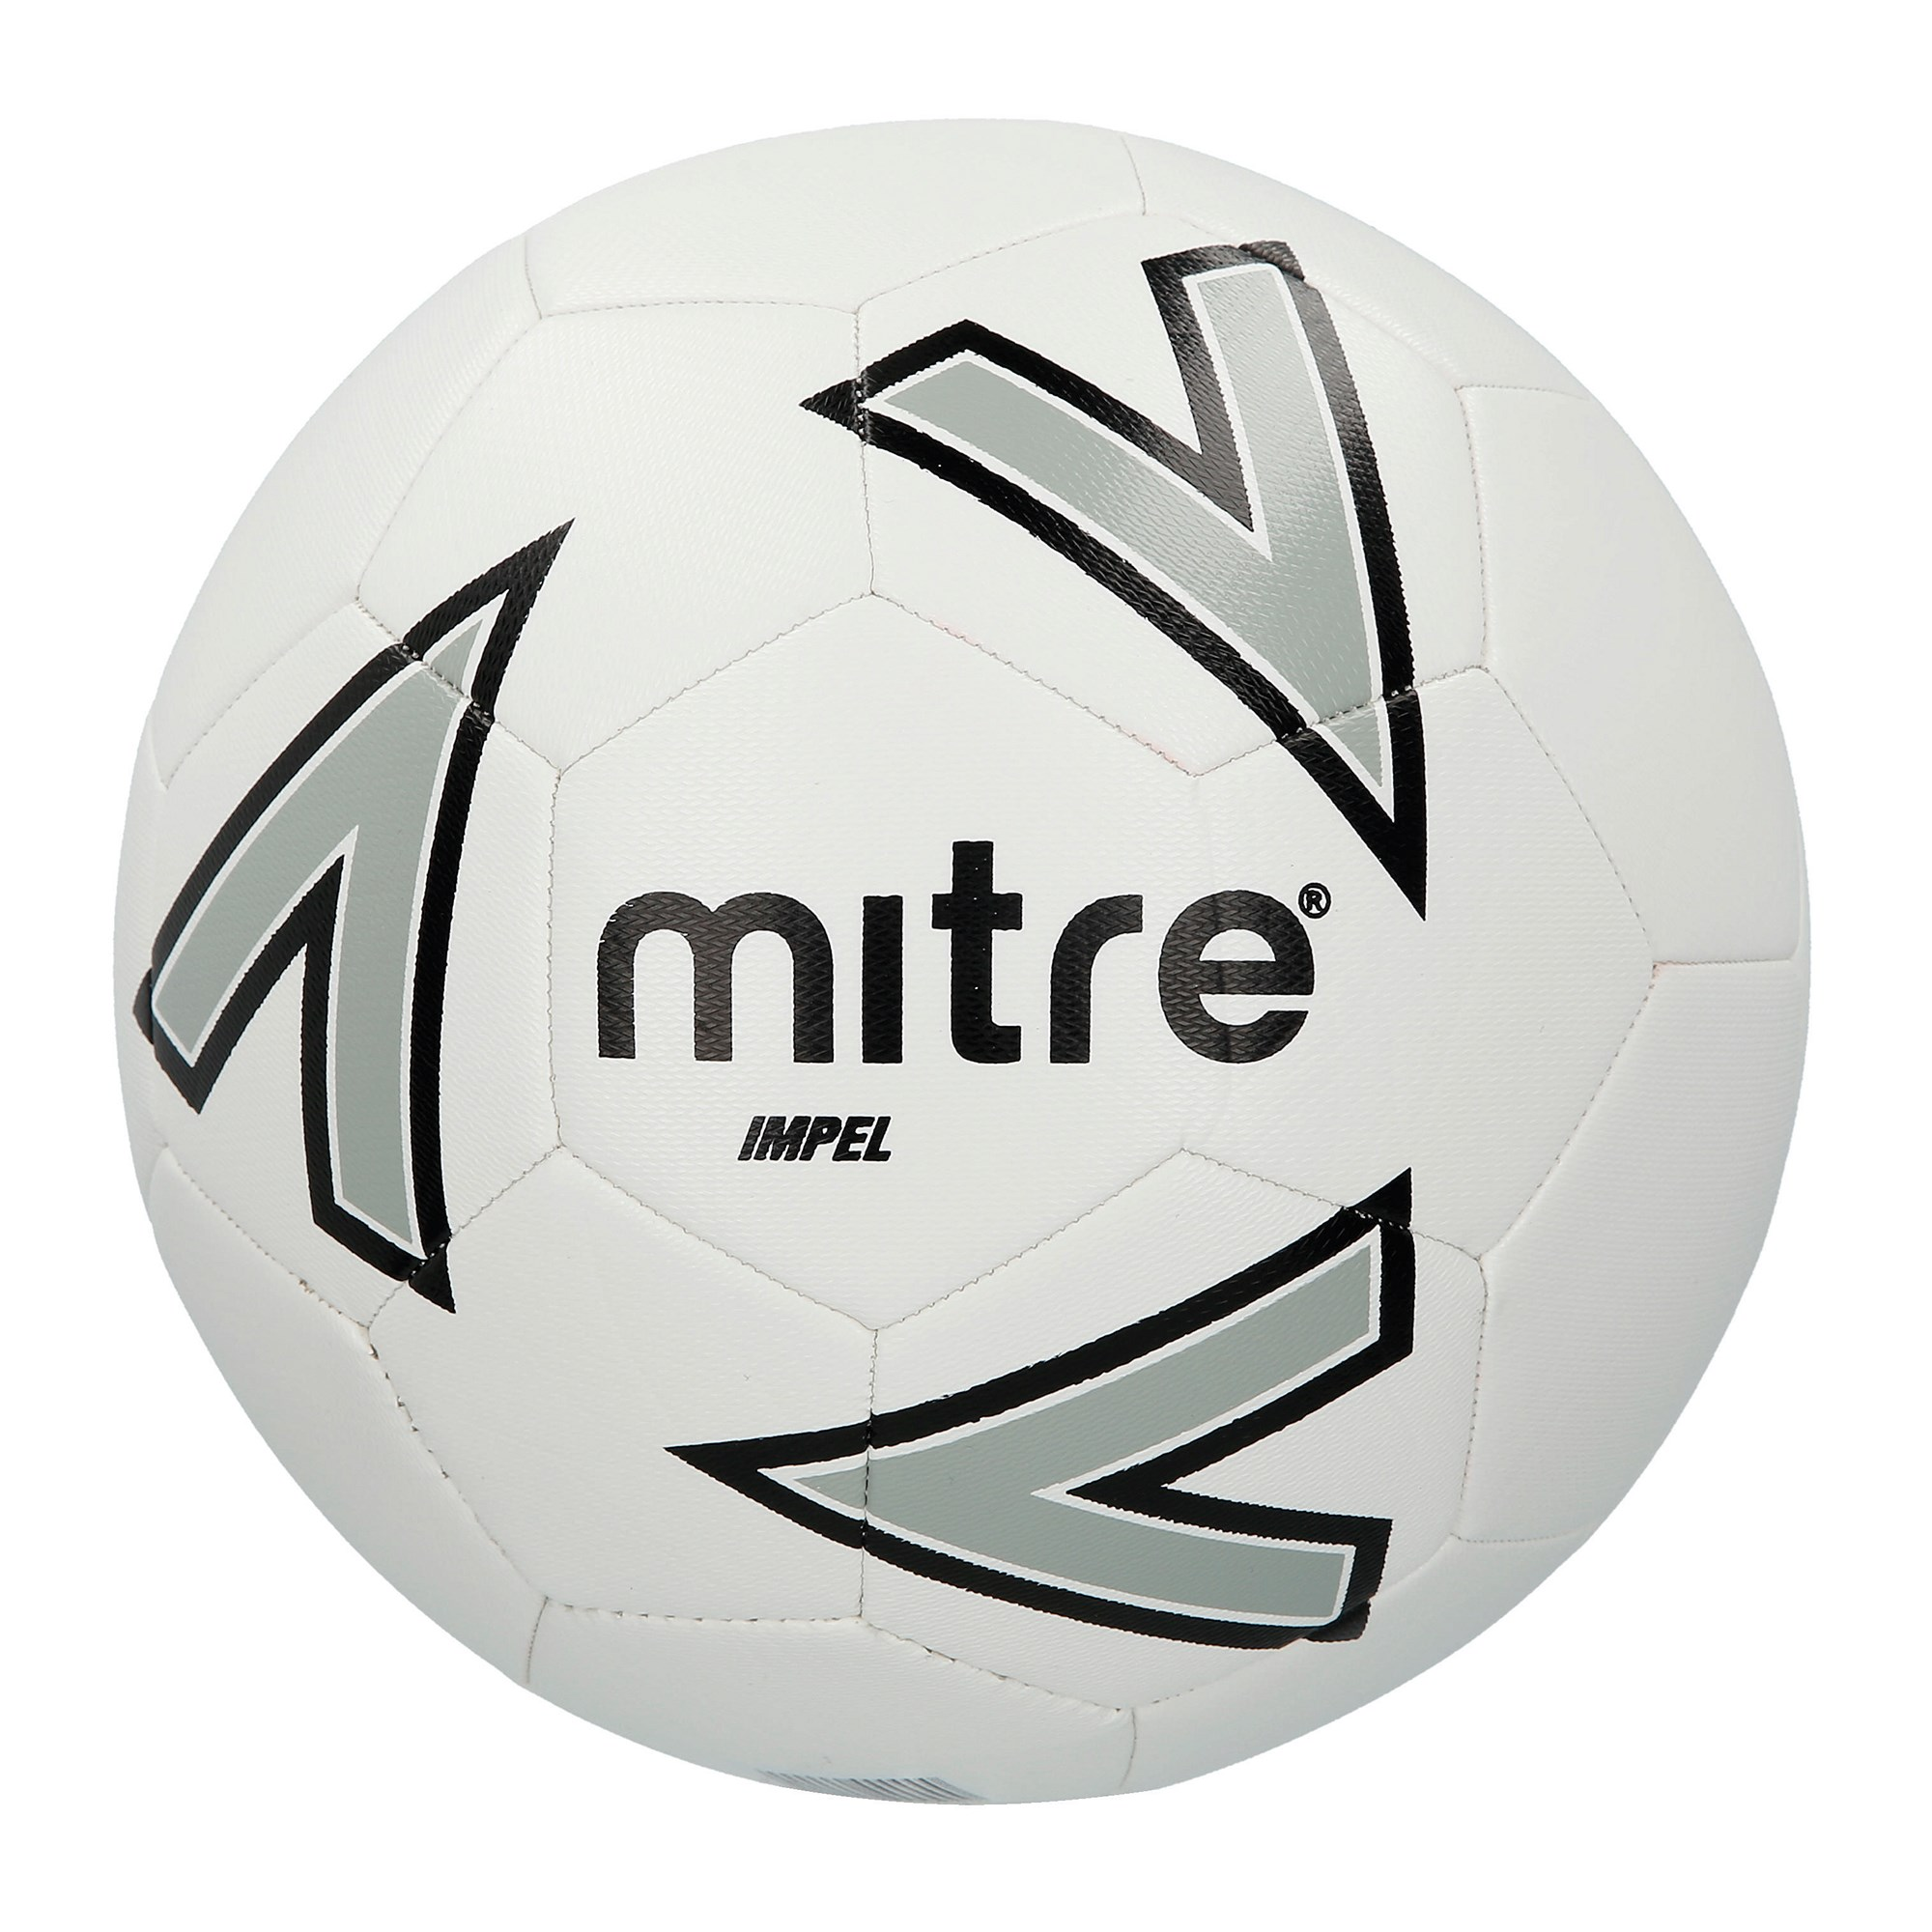 Mitre Impel Football - Size 5 - White/Silver/Black